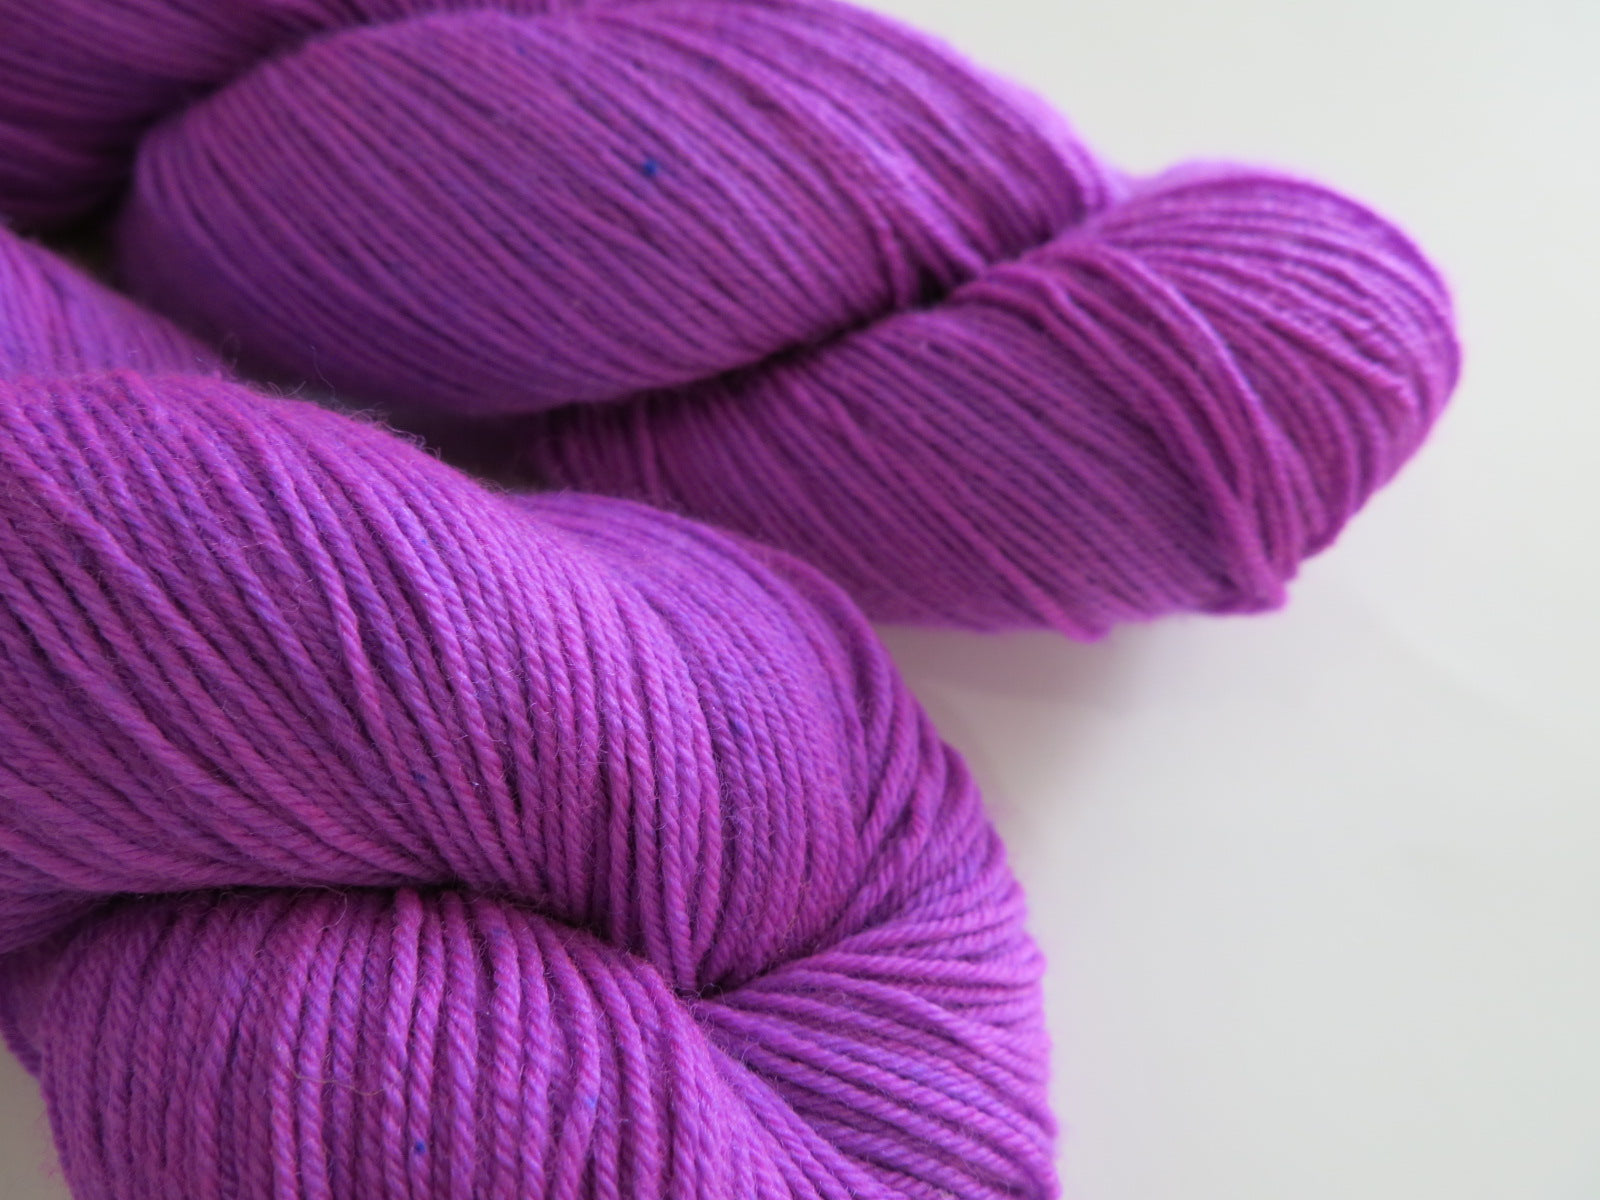 indie dyed uv reactive purple superwash merino wool for knitting